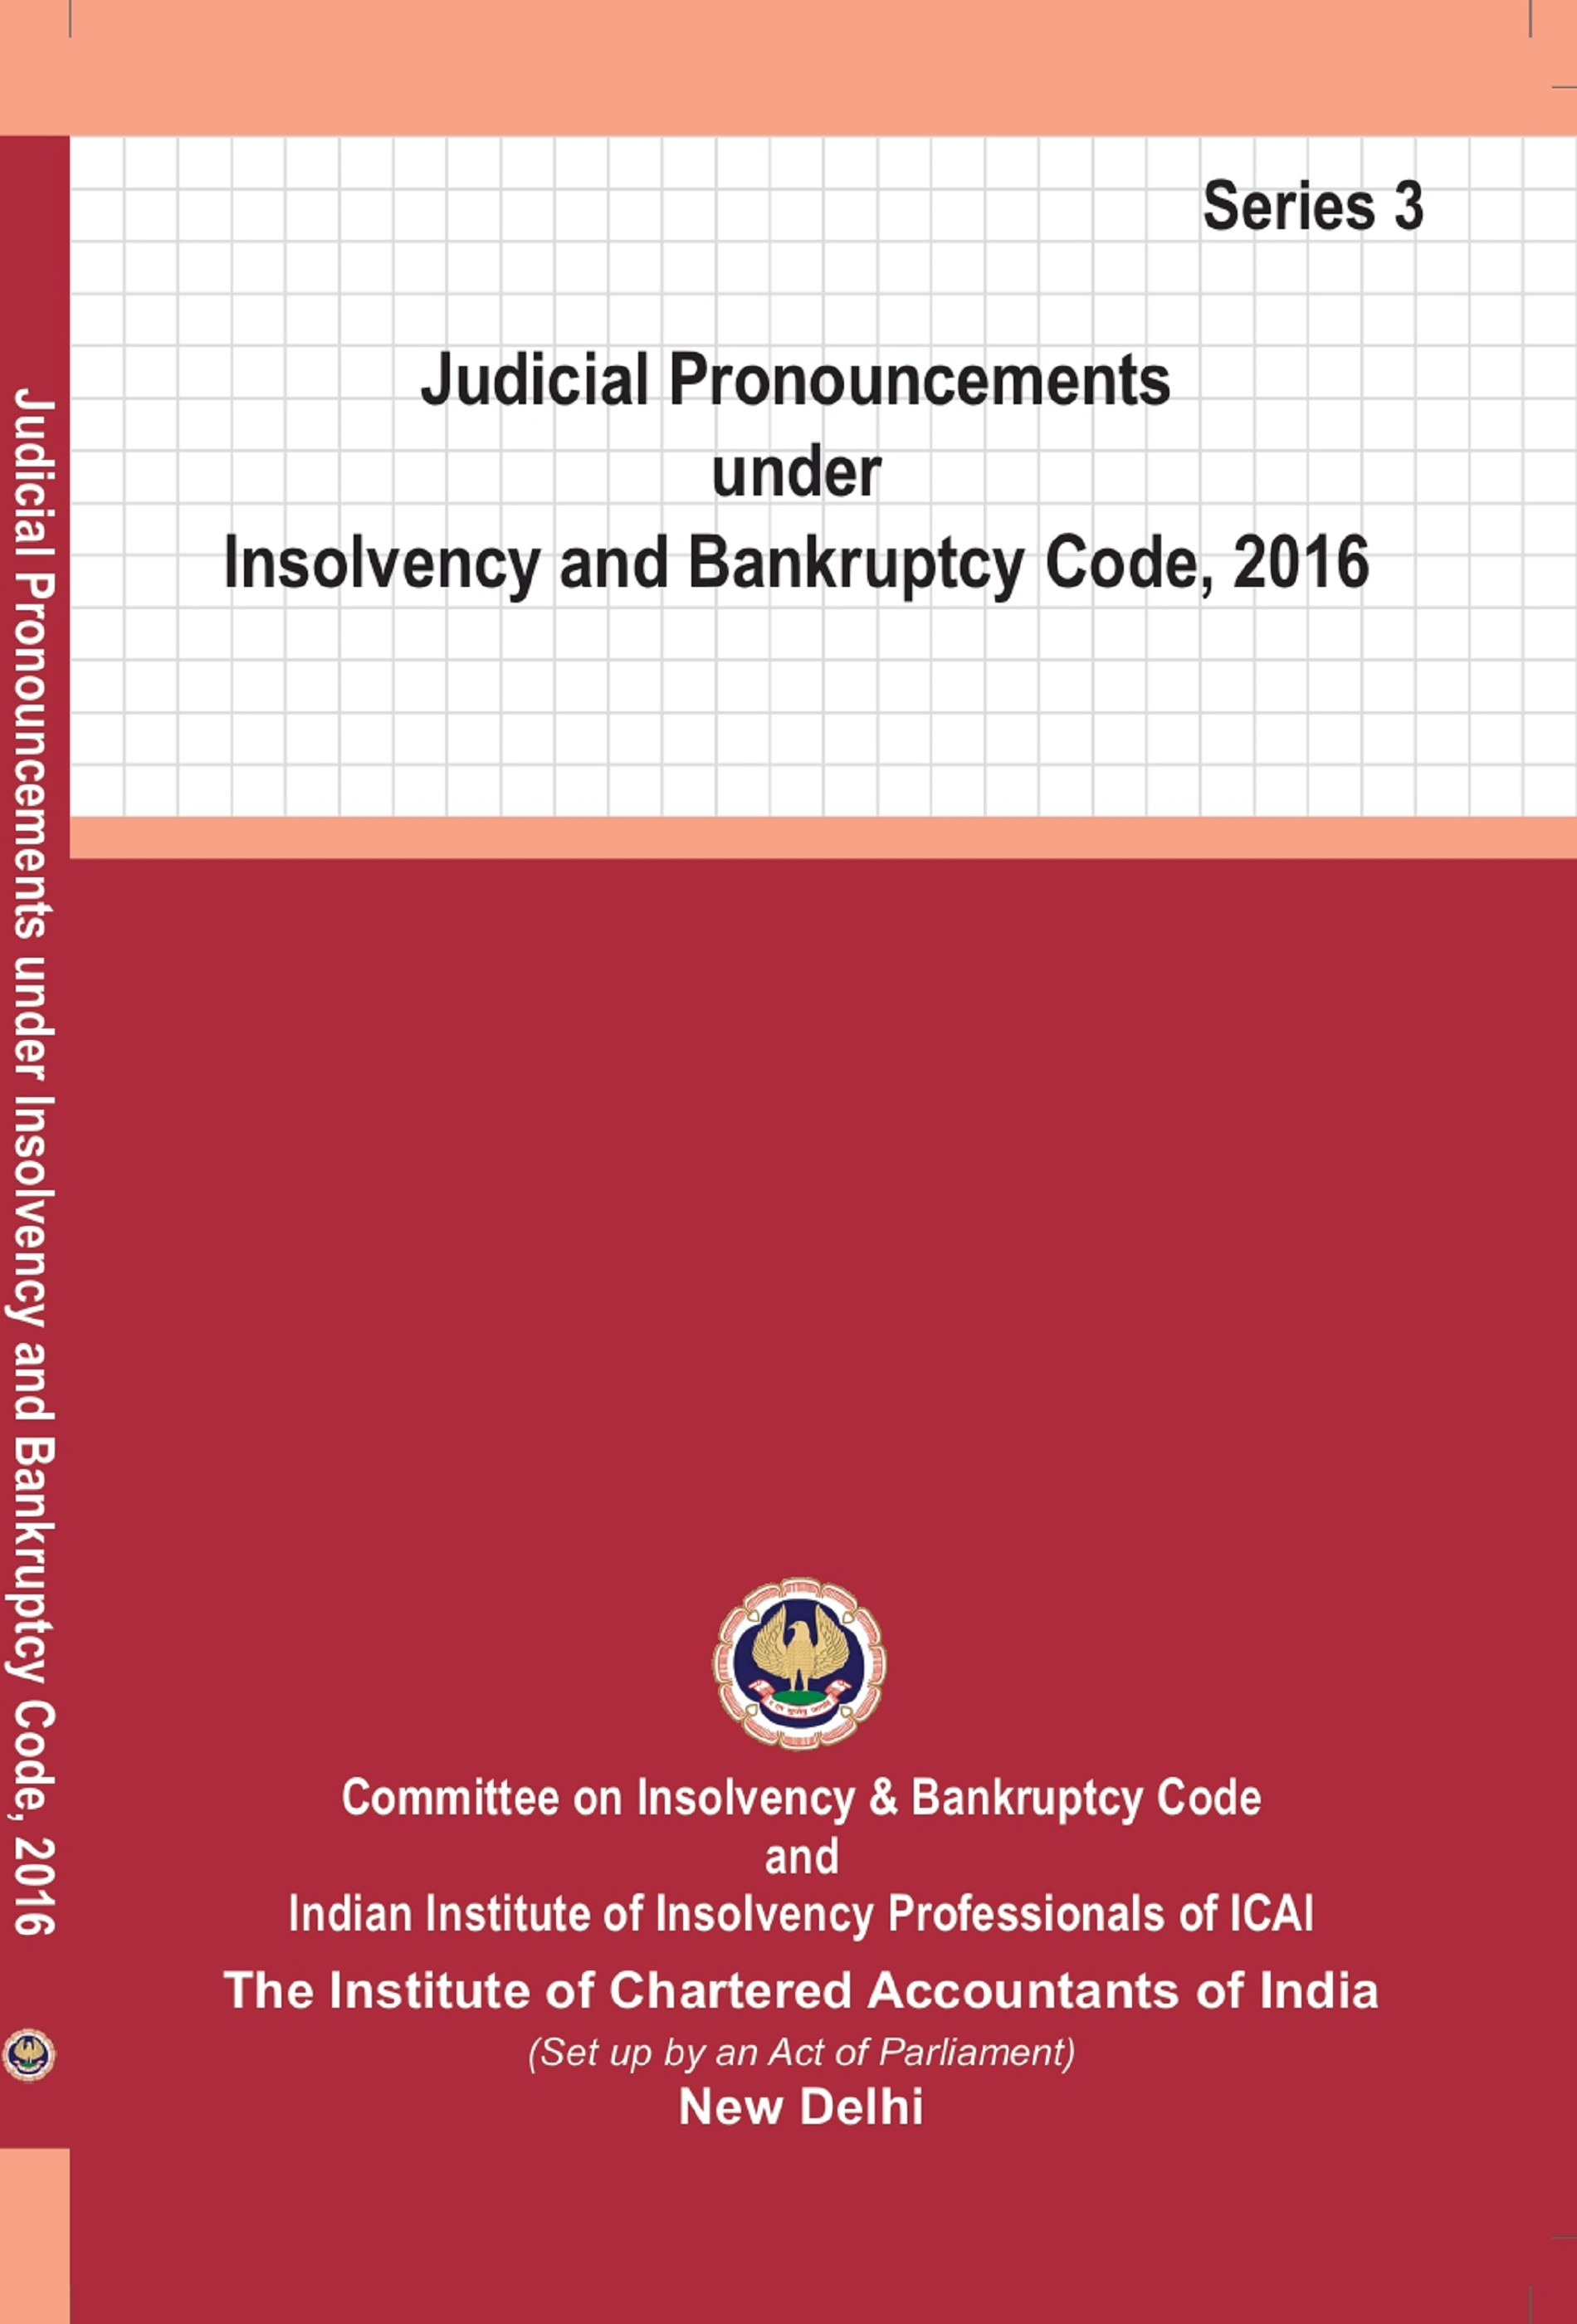 Judicial Pronouncements under Insolvency and Bankruptcy Code, 2016 (Series-3) (June, 2020)